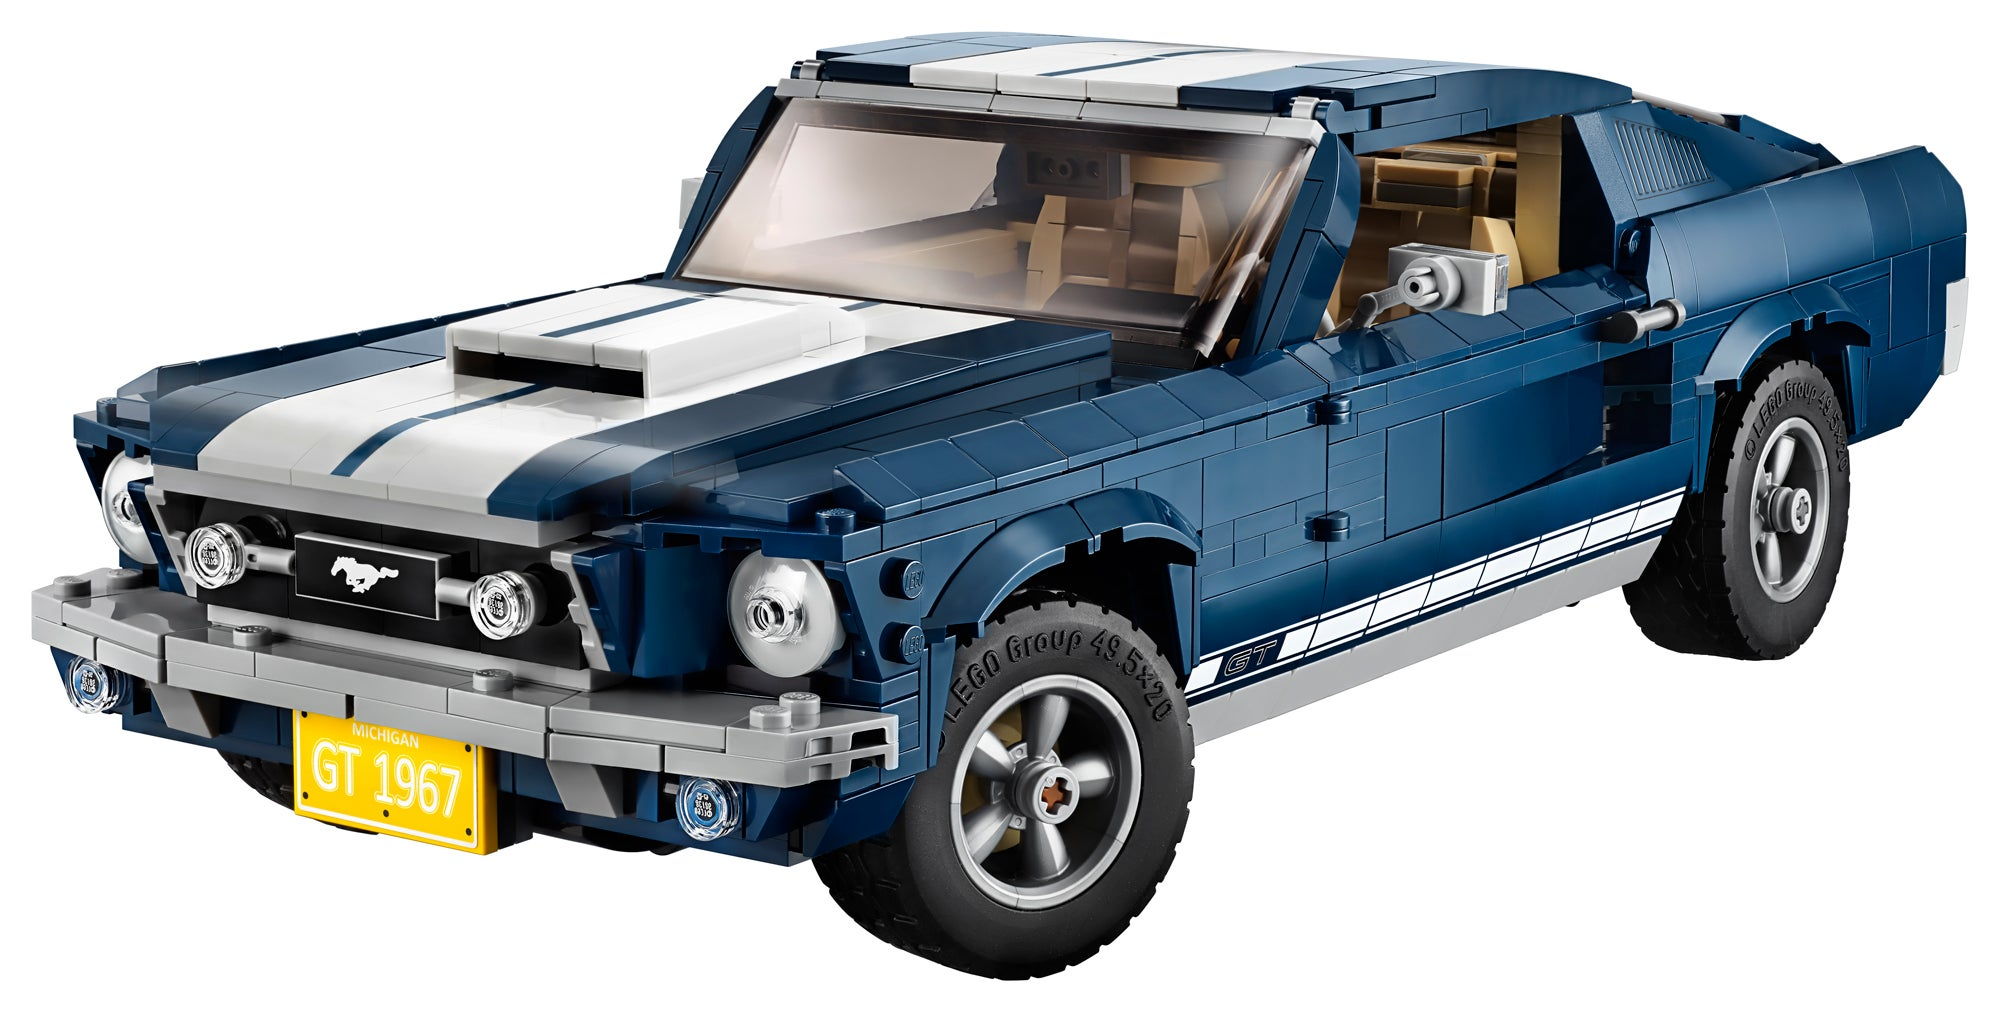 Case in point legos new creator expert series 1960s era ford mustang model which does a remarkably good job at recreating the curves of a now iconic